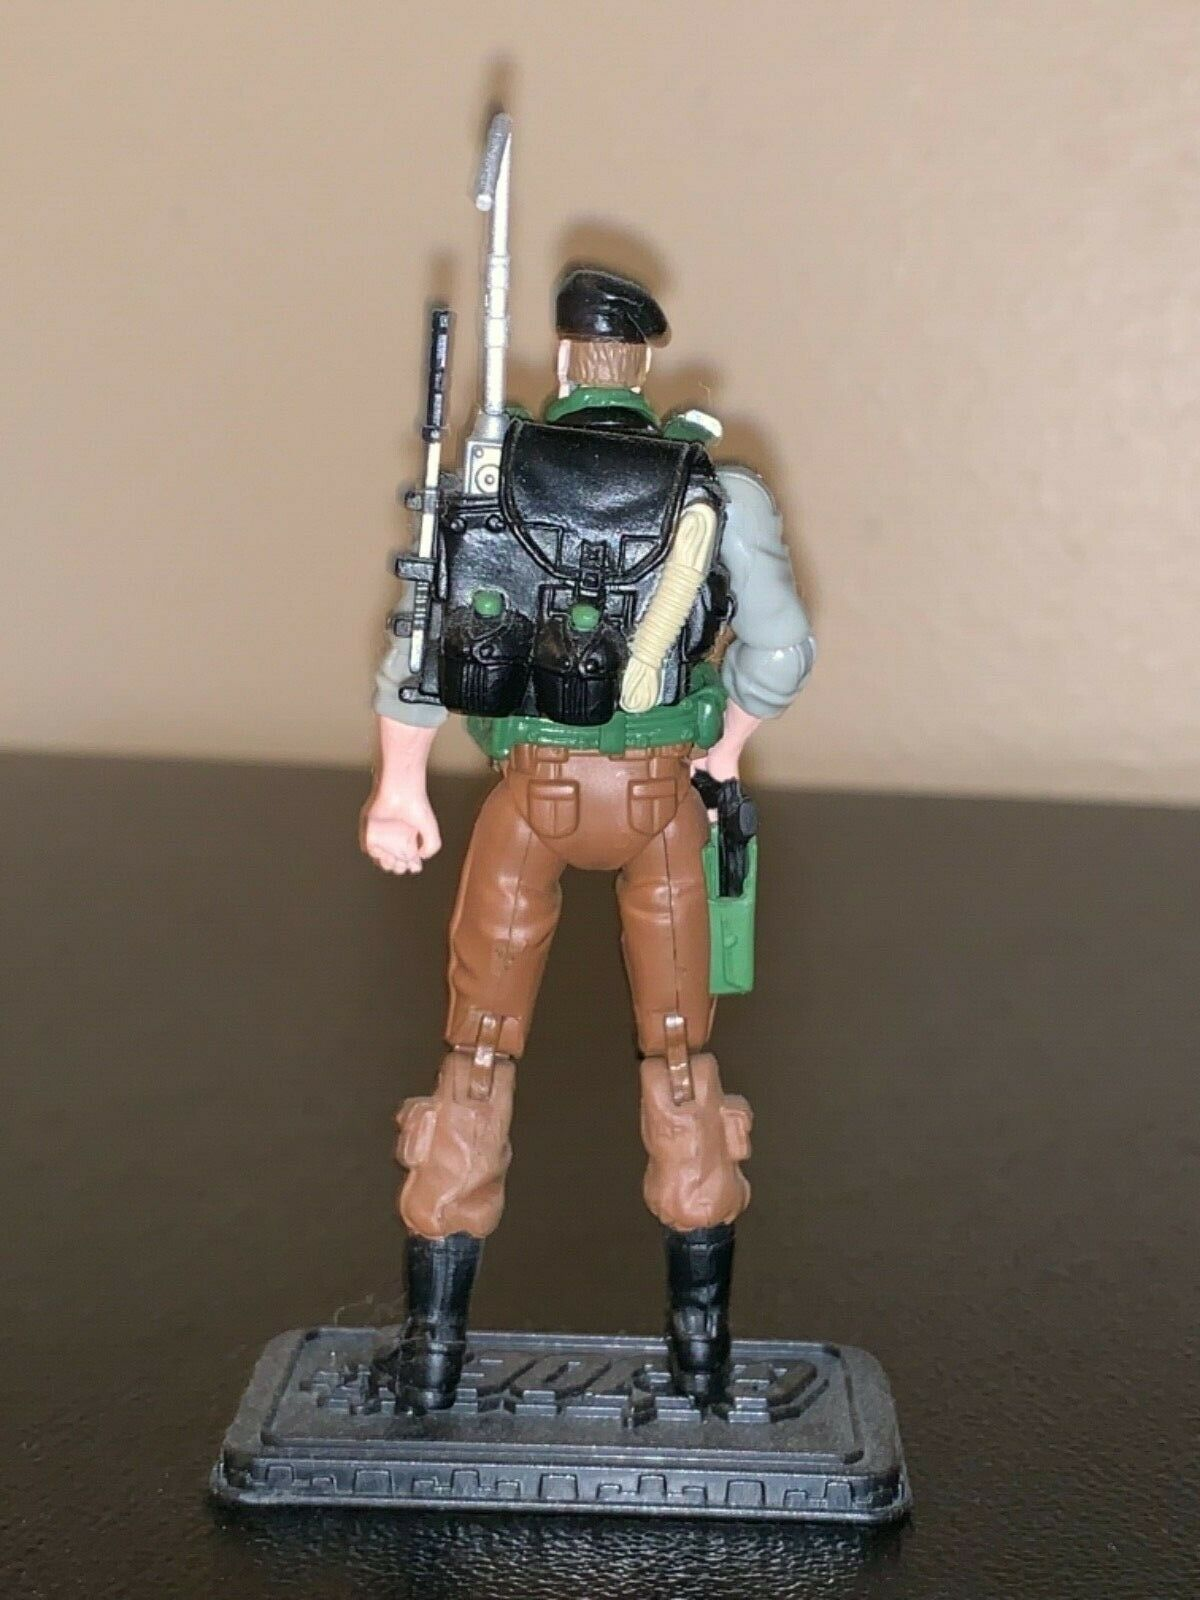 GI Joe Unreleased Cancelled Night Force Falcon completare completare completare Prossootype Rare f9f106